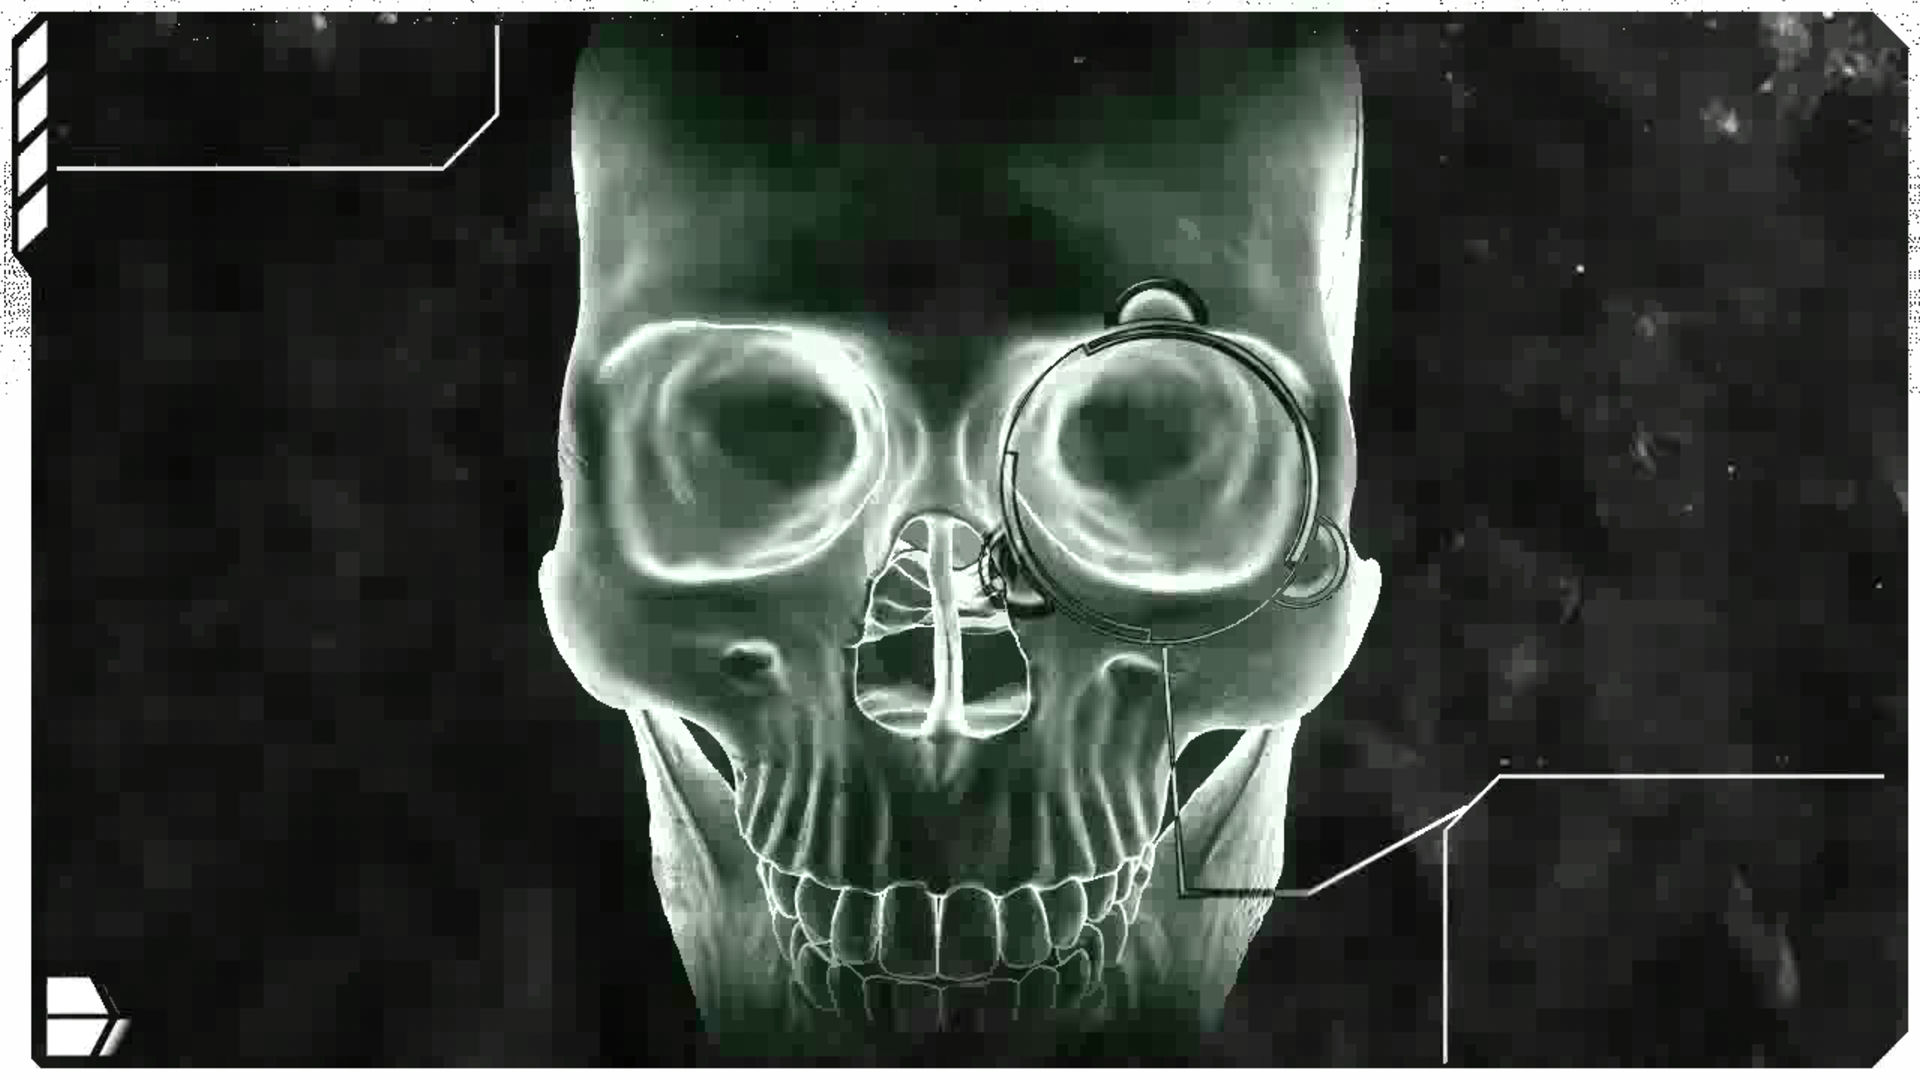 Free Download Human Skull X Ray Wallpaper 224381 1920x1080 For Your Desktop Mobile Tablet Explore 72 X Ray Wallpaper X Ray Wallpaper For Computer Cool X Ray Wallpaper X